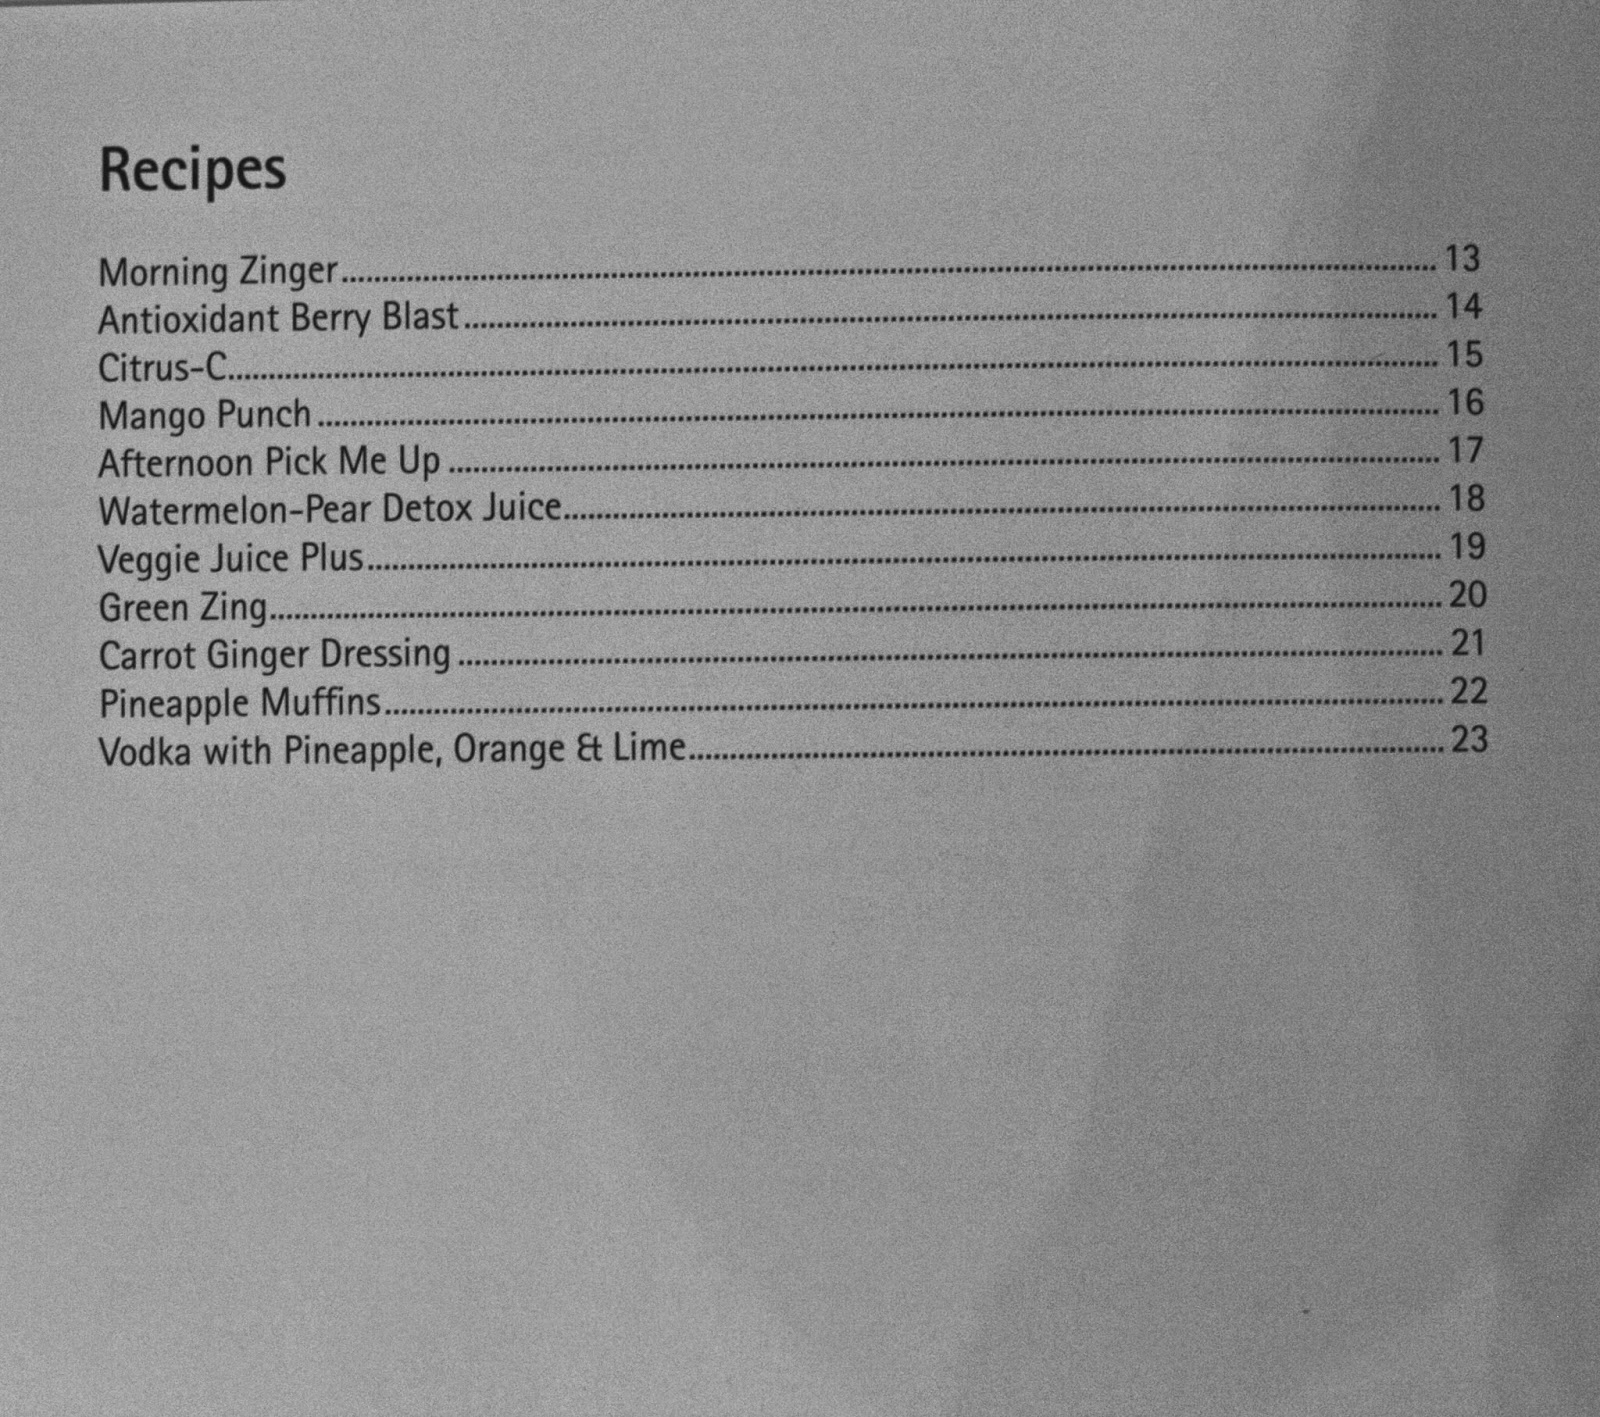 Juice recipe list in Cuisinart Compact Juicer's manual